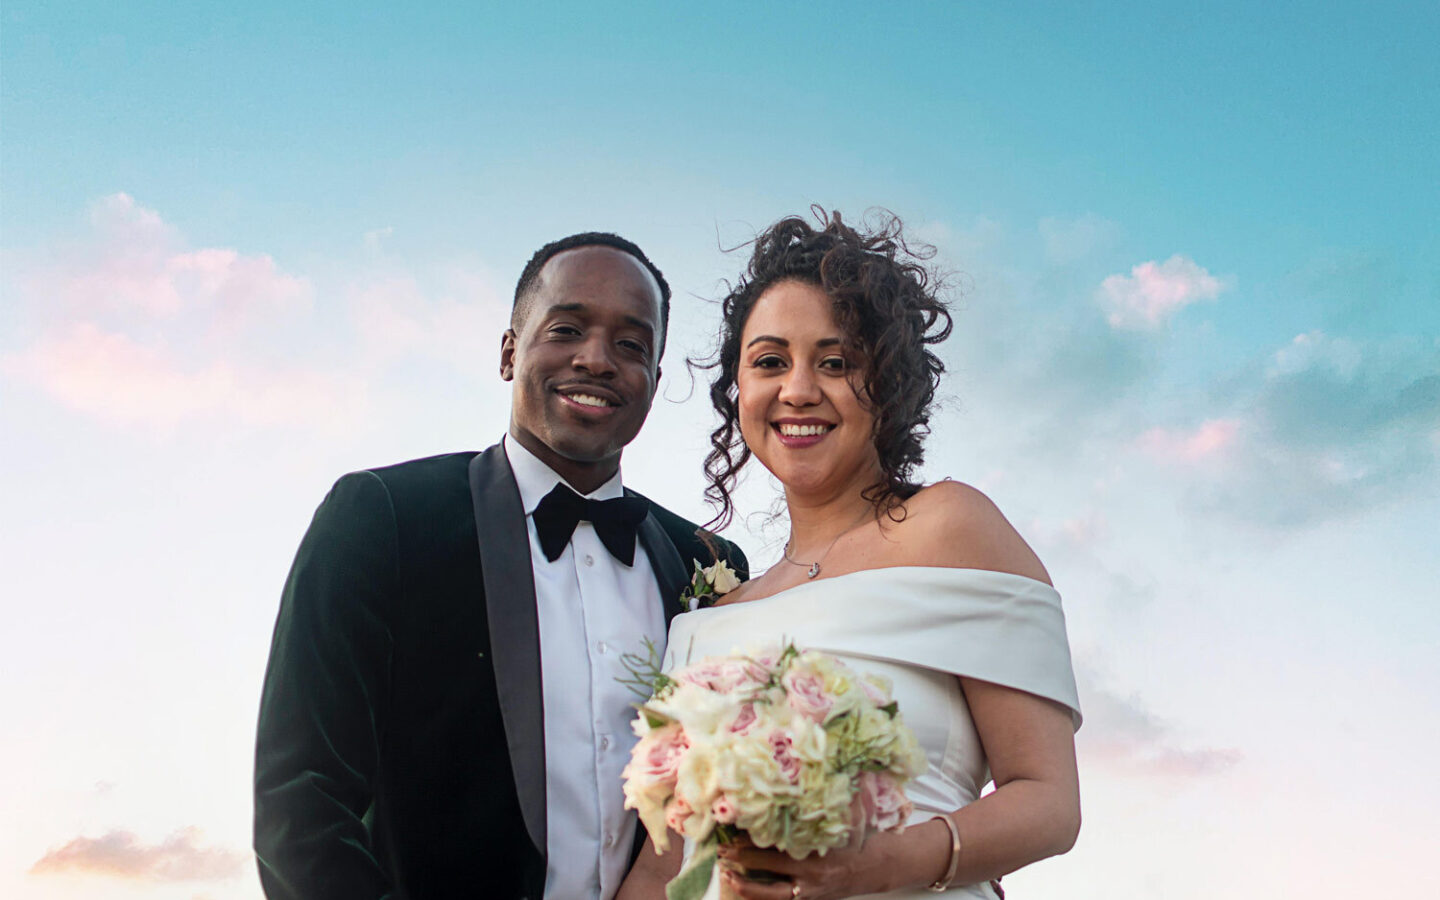 bride and groom smiling under bright blue sky